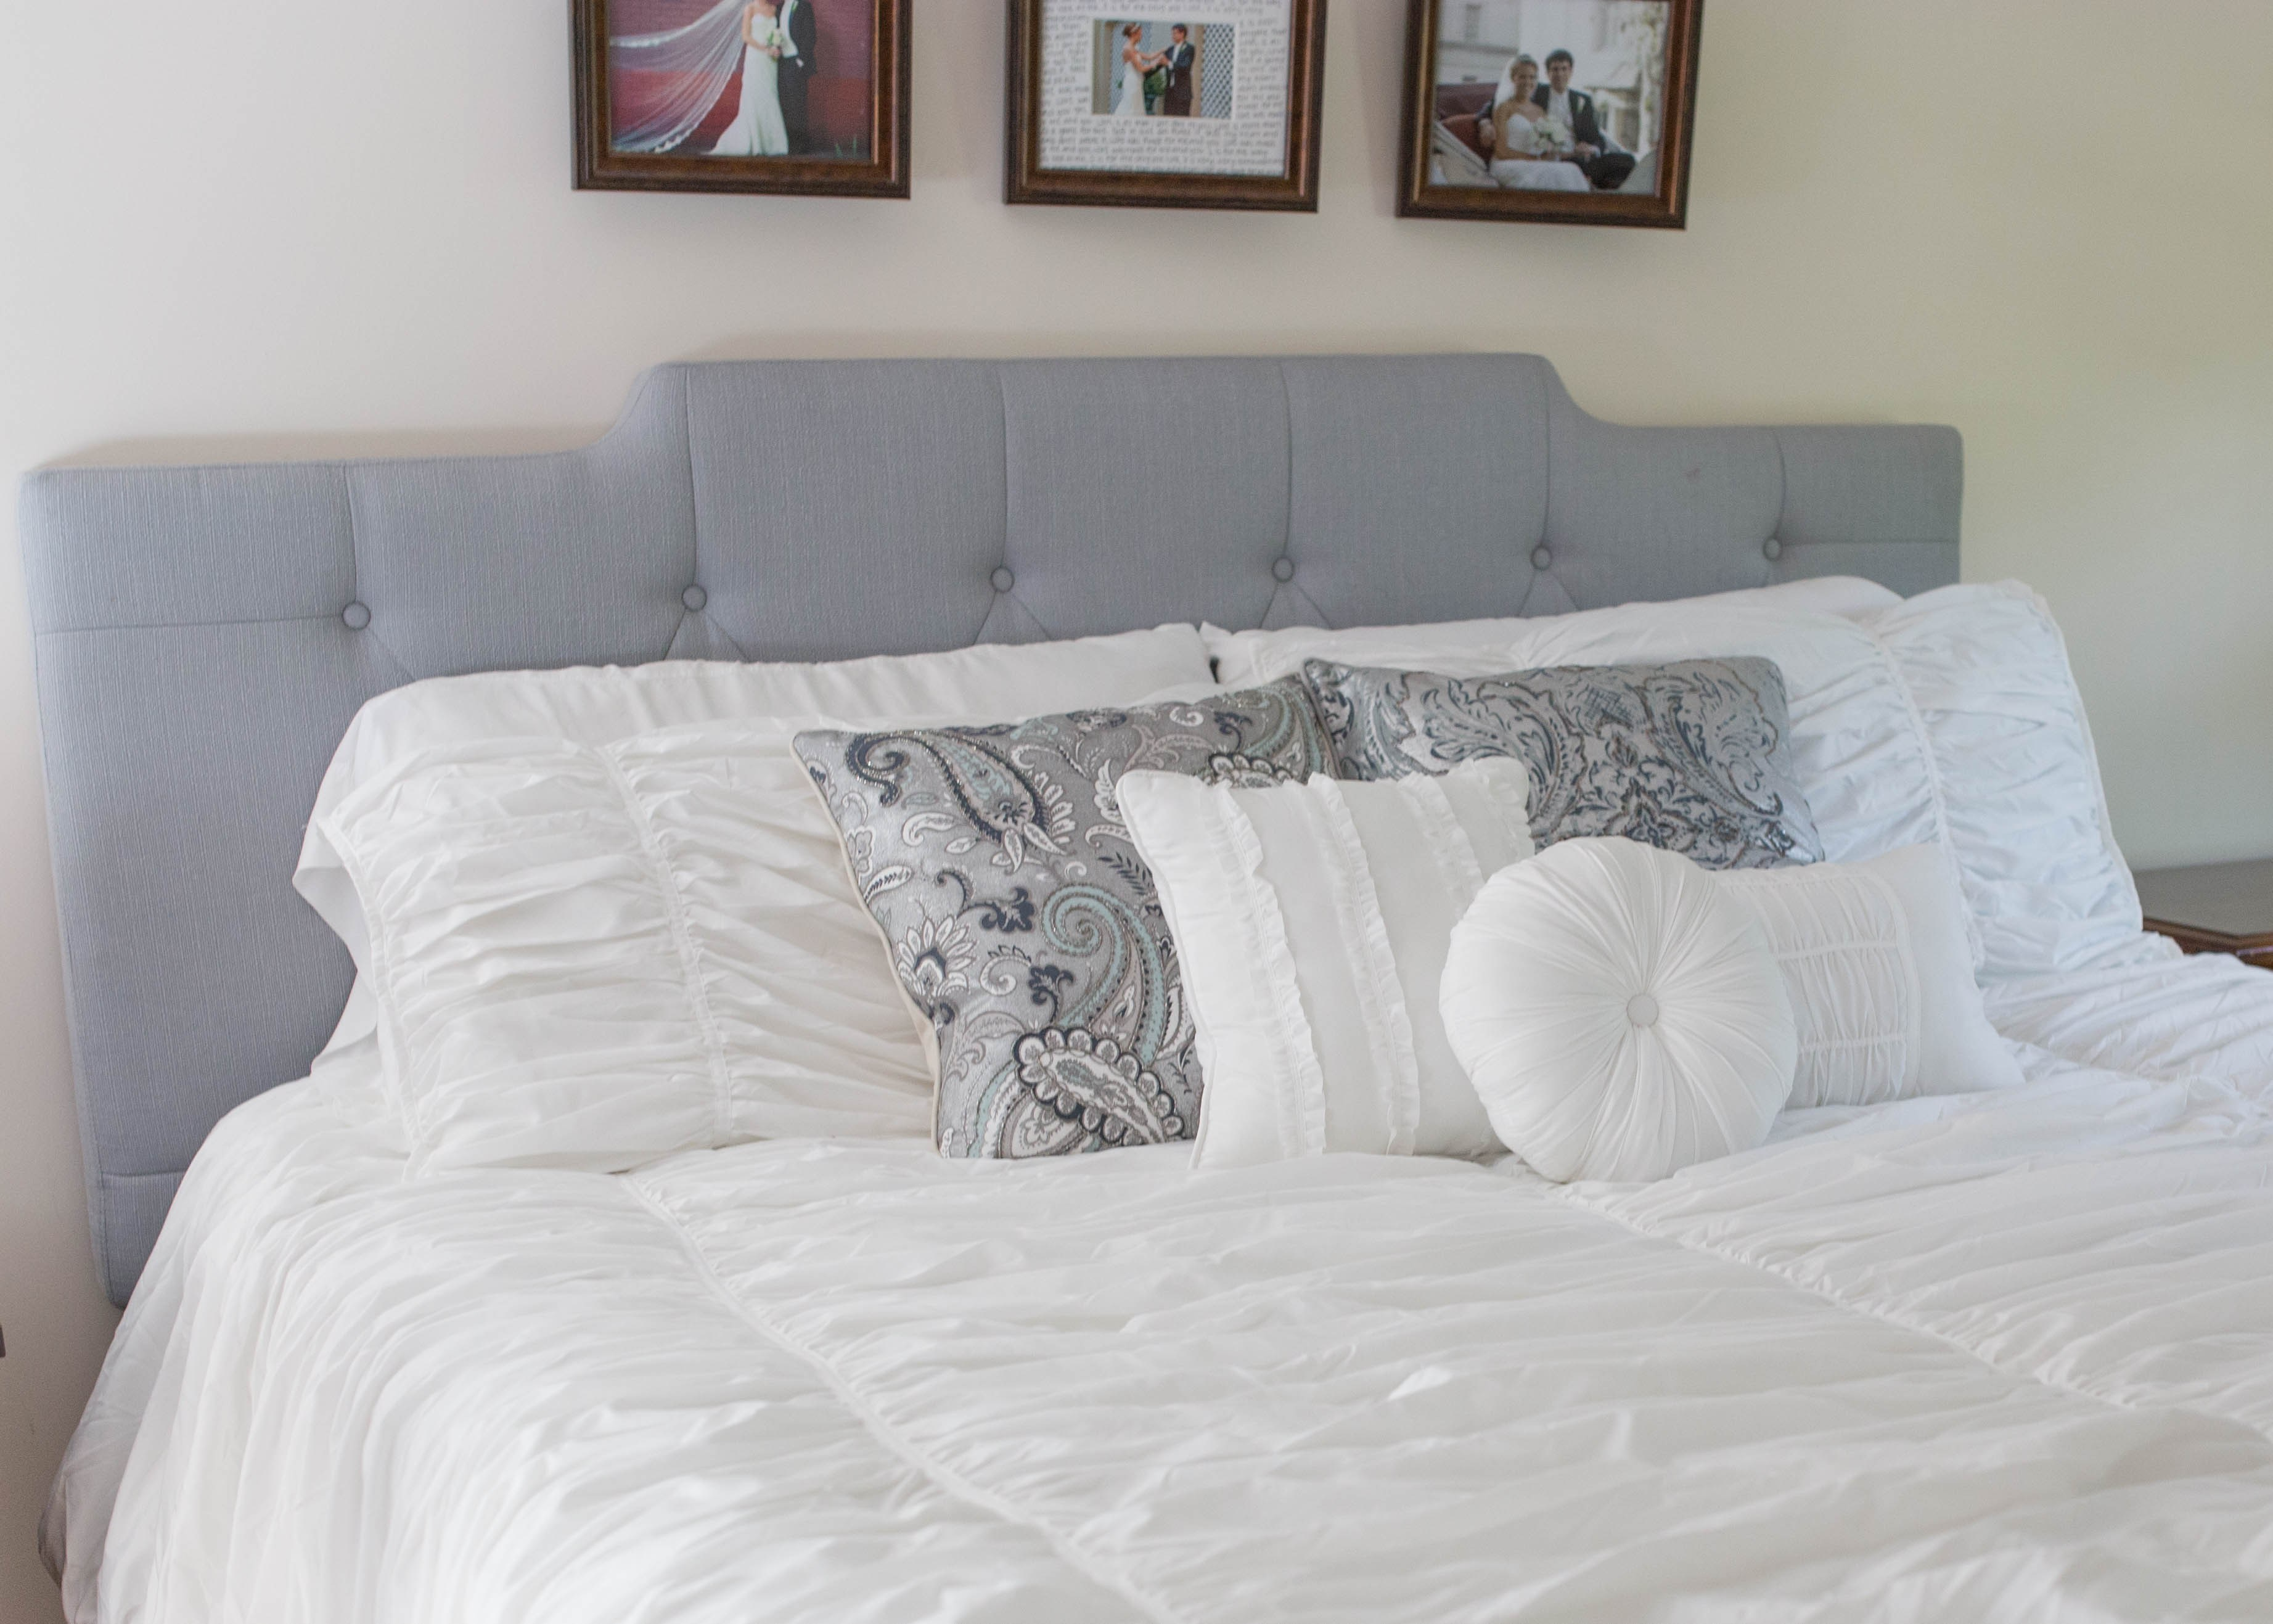 Bed Inspiration: Make yourself cuddly!